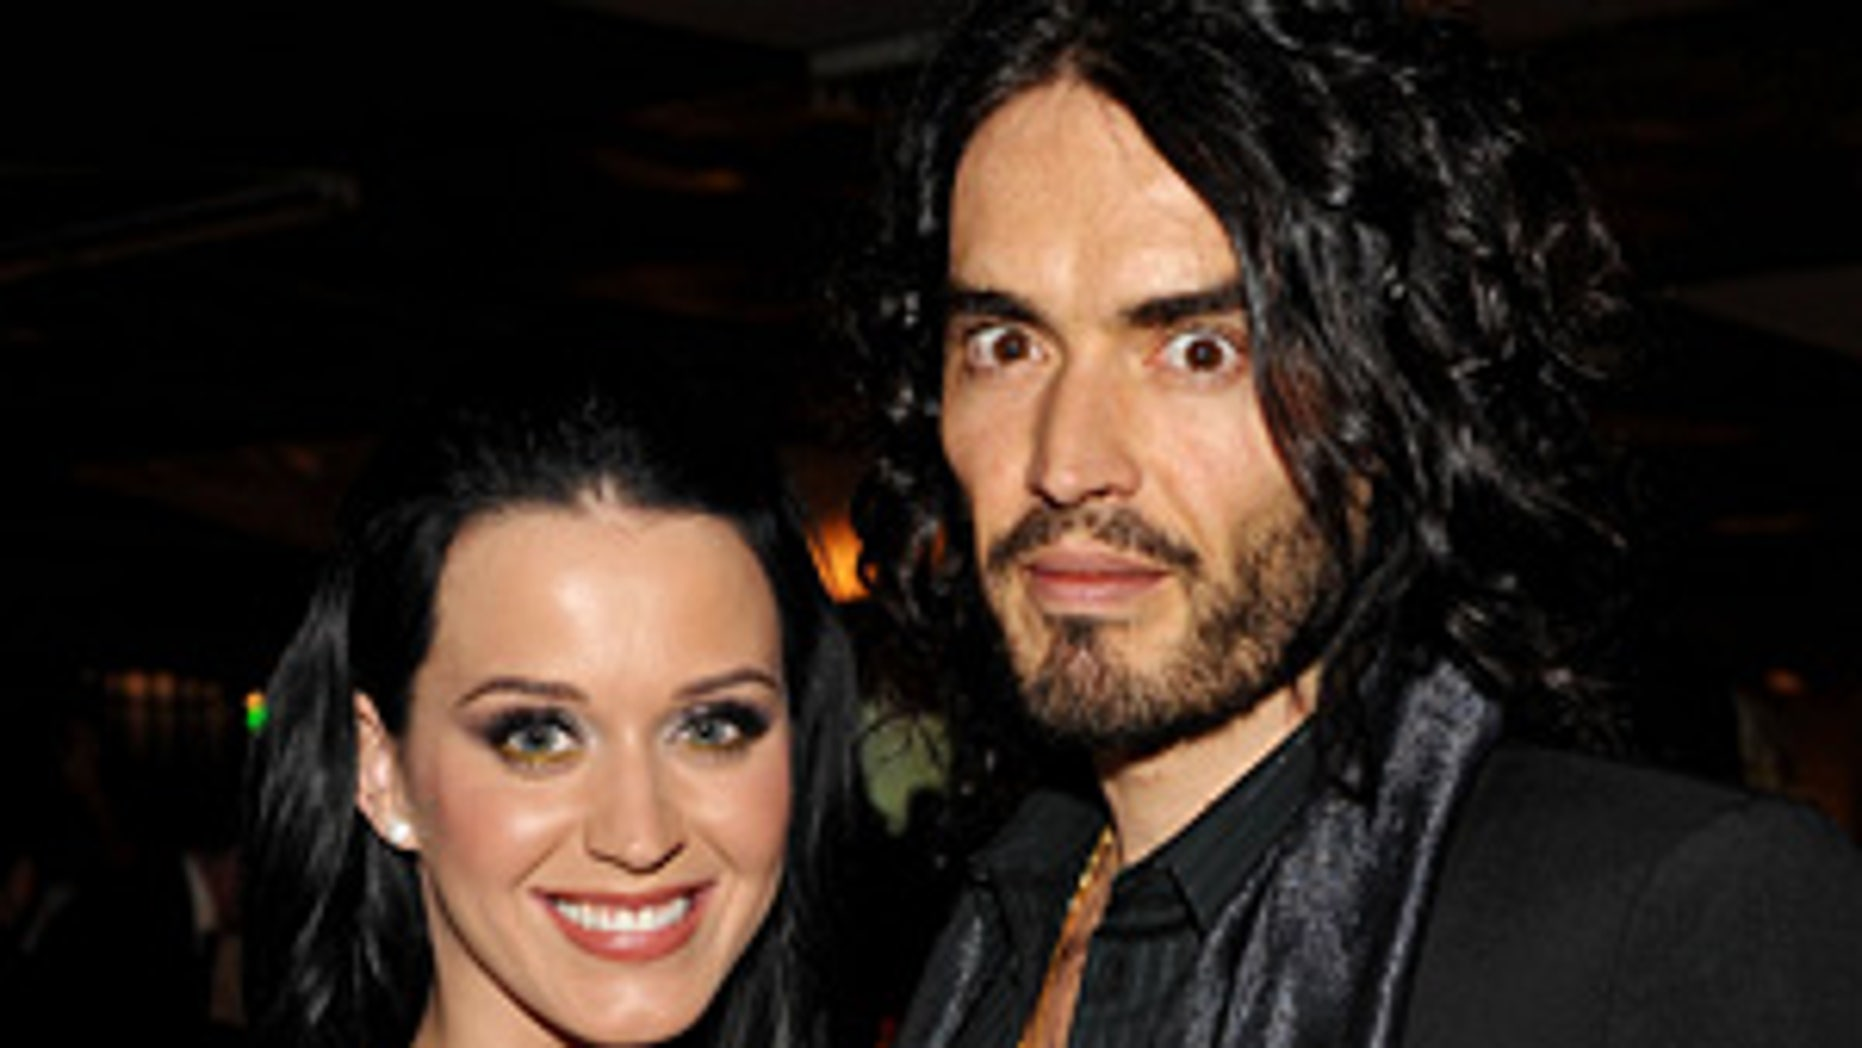 """BEVERLY HILLS, CA - JANUARY 16:  Singer Katy Perry and actor/comedian Russell Brand attend The Art of Elysium's 3rd Annual Black Tie Charity Gala """"Heaven"""" on January 16, 2010 in Beverly Hills, California.  (Photo by John Shearer/WireImage)"""